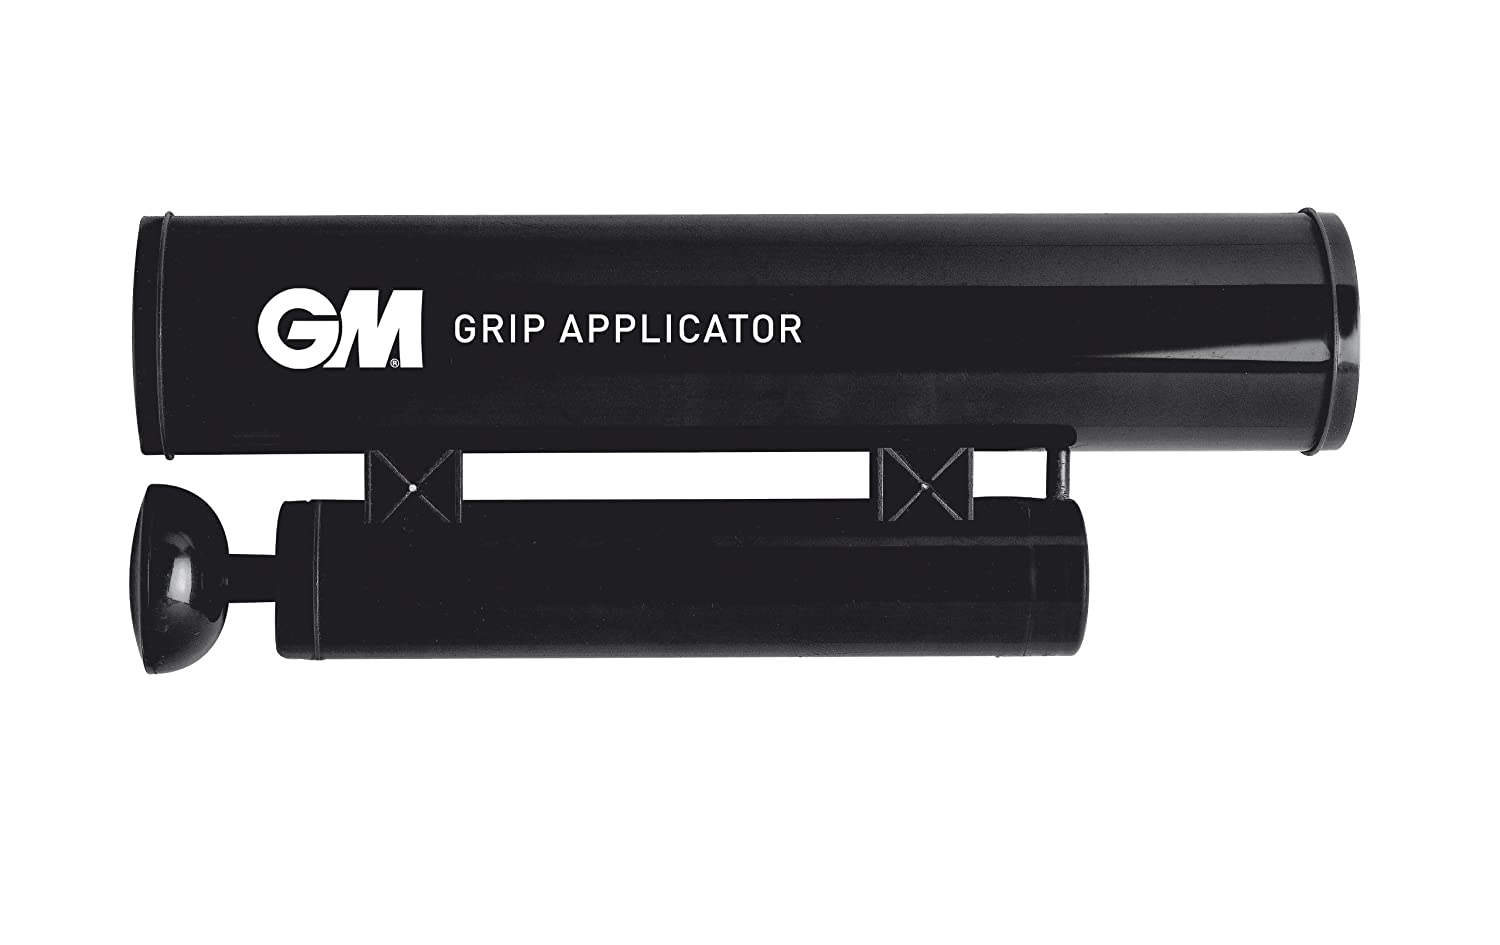 GM Applicateur de grip pour batte de cricket GM7017